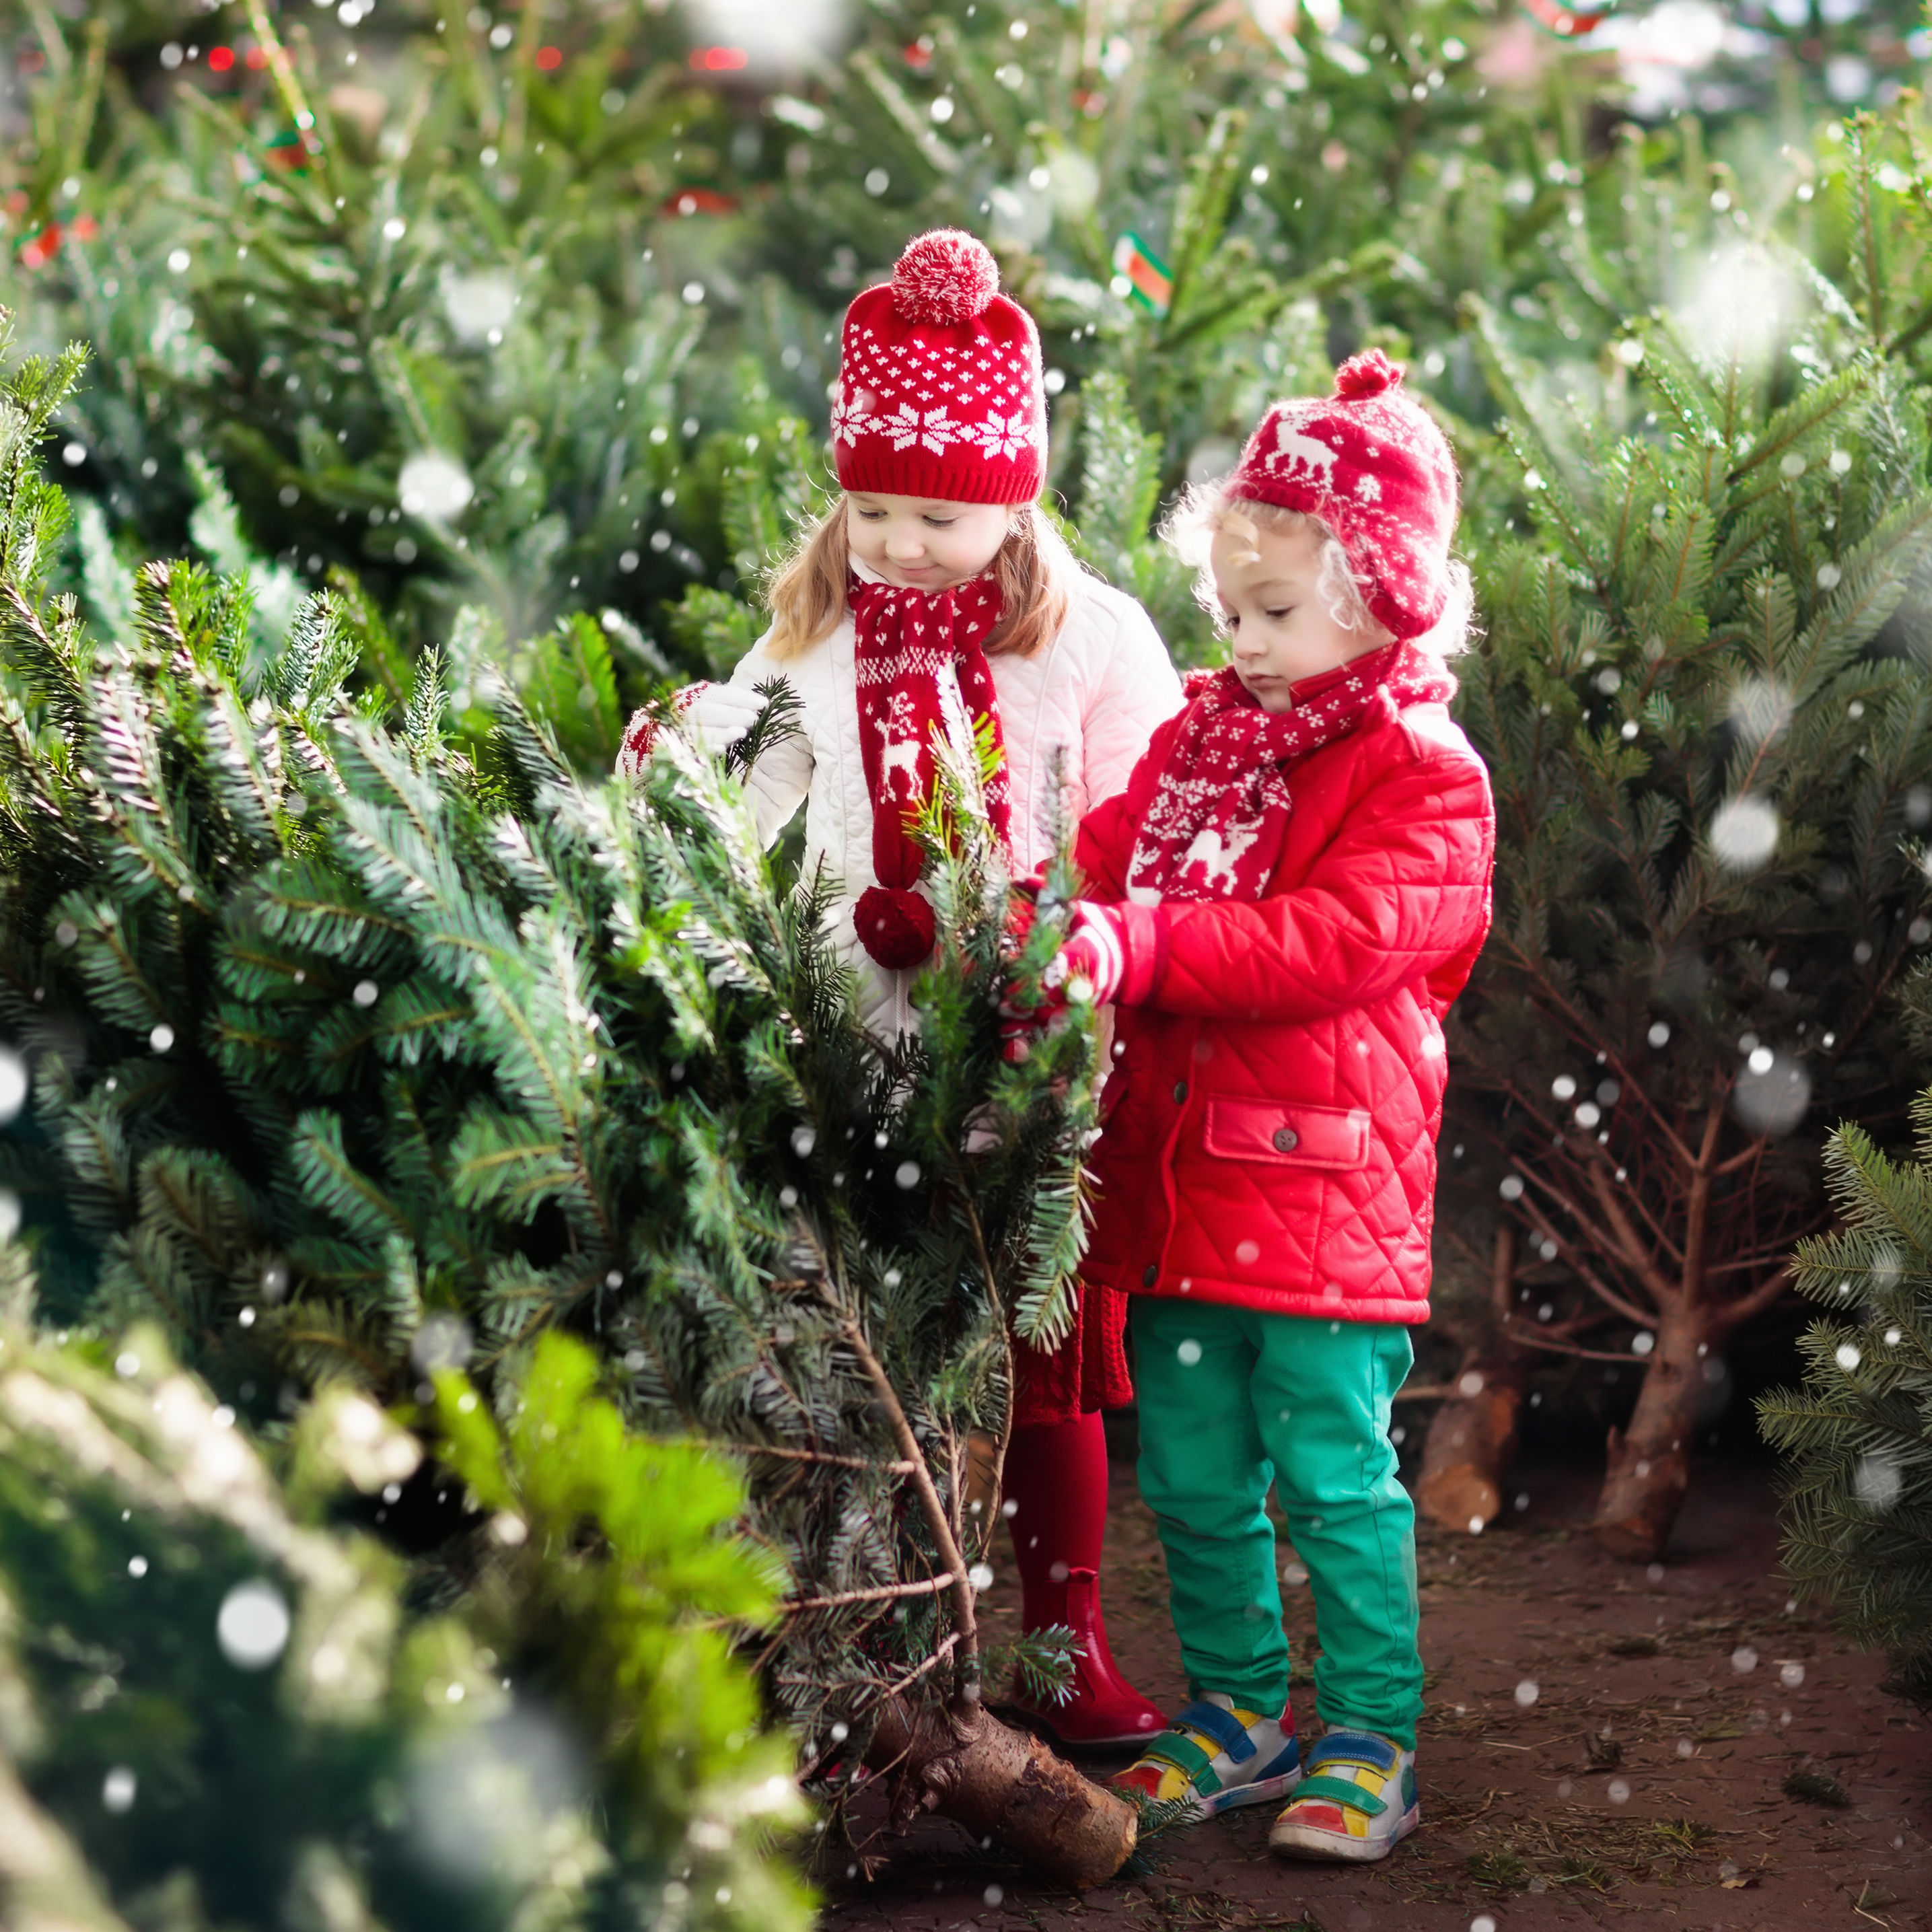 The Real Christmas Tree Farm: Portland's 10 Best Airbnb Rentals